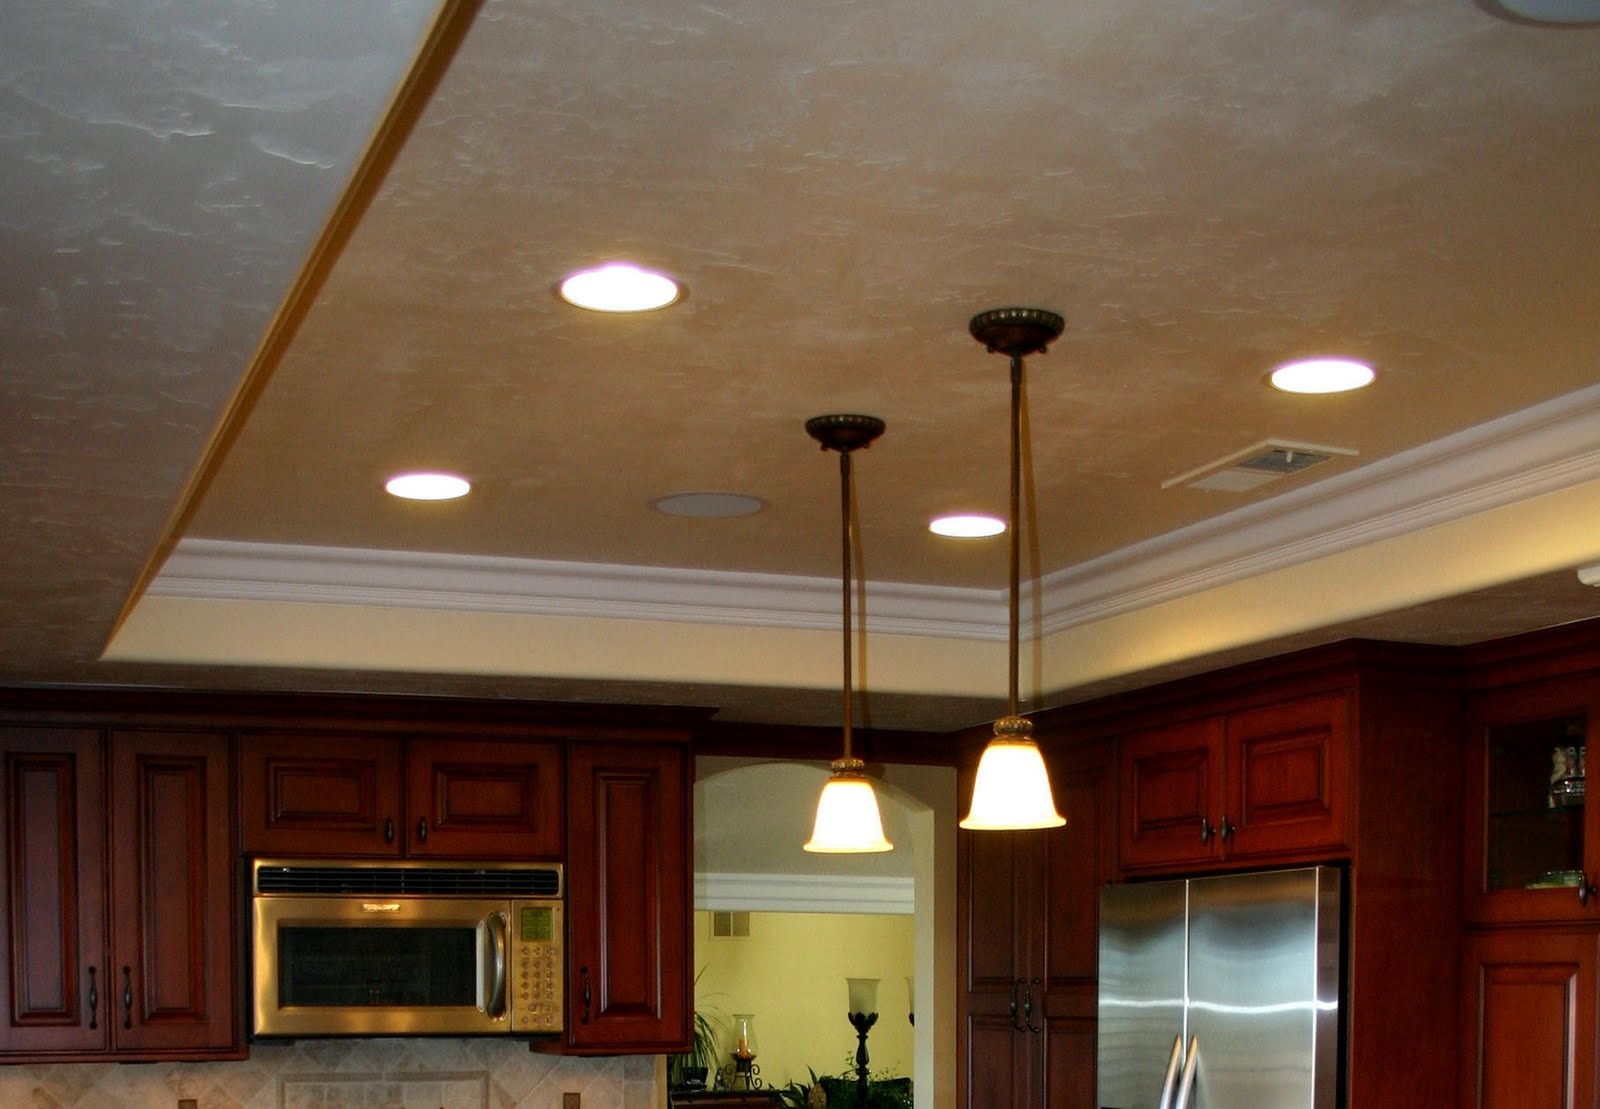 Lights For Kitchen Ceiling White Cabinets Sale C B I D Home Decor And Design Bonnies Old